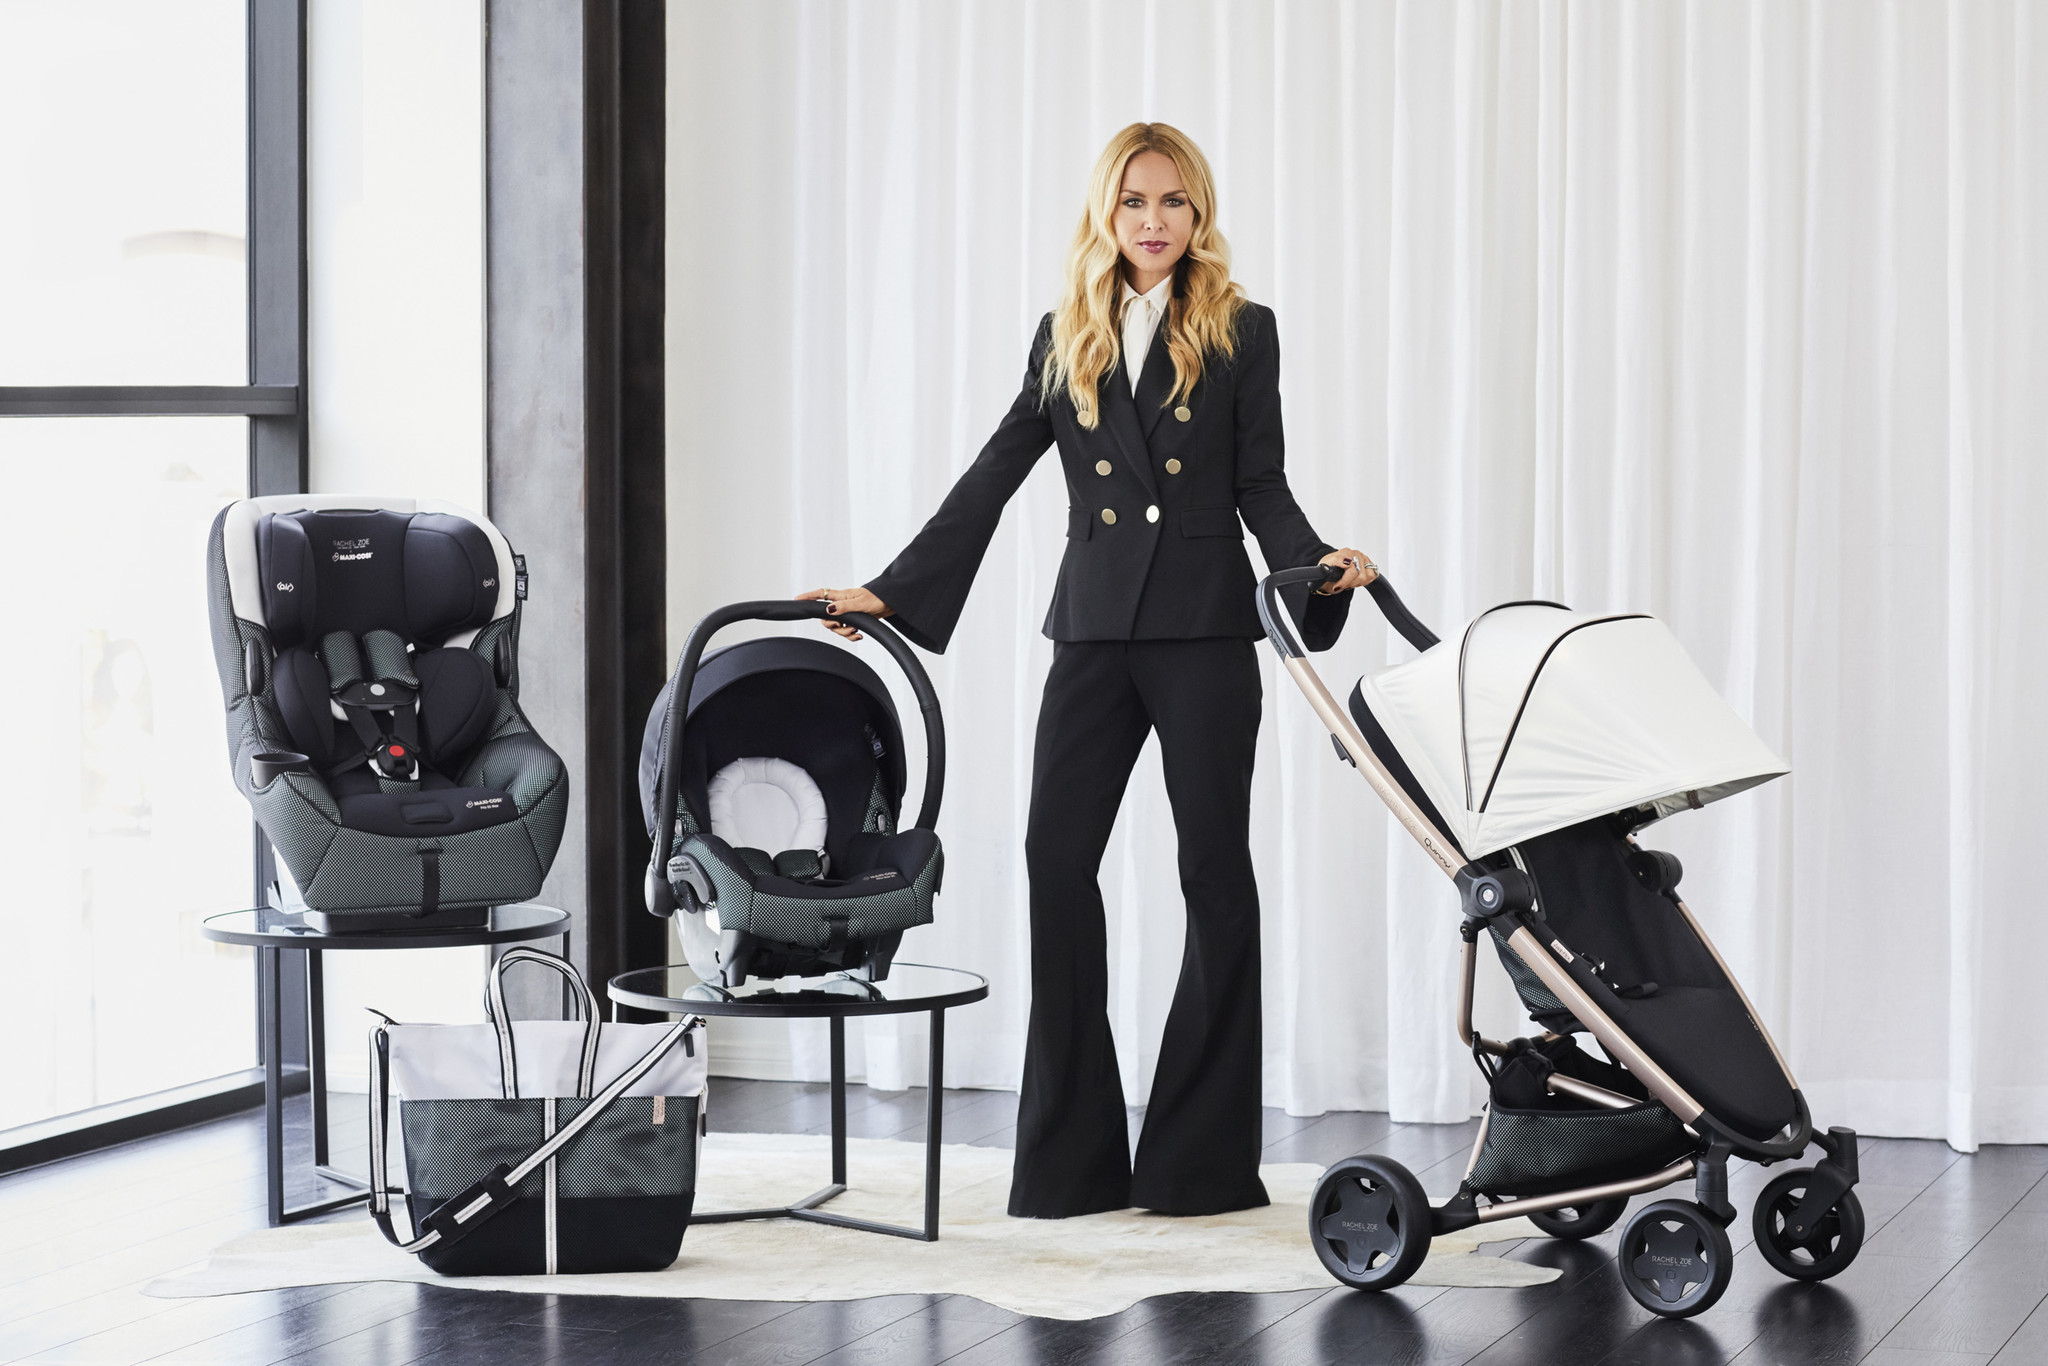 For stylish moms, designer Rachel Zoe has created a black-and-white collection of baby gear with champagne metal accents.